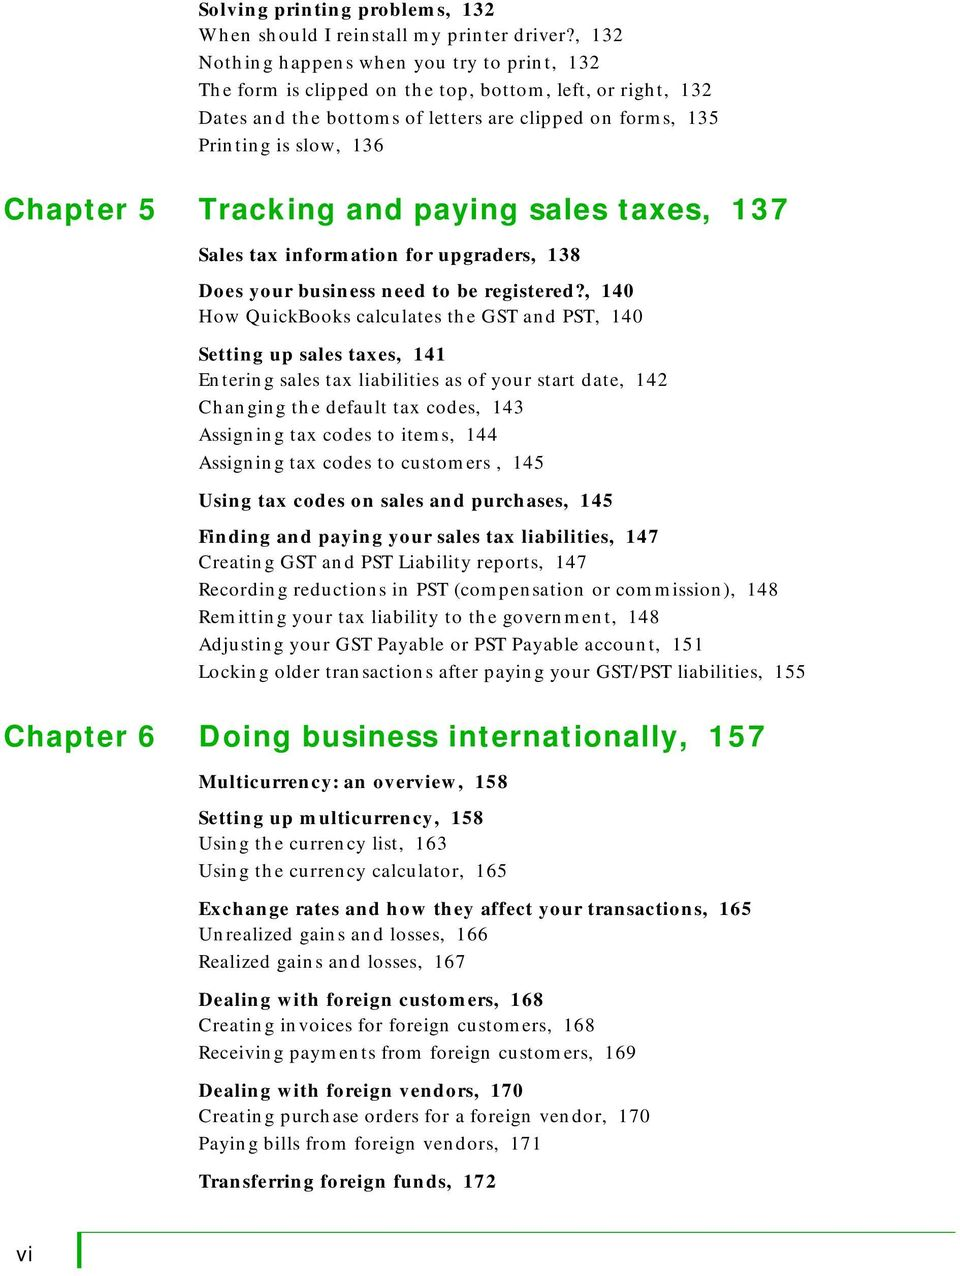 Tracking and paying sales taxes, 137 Sales tax information for upgraders, 138 Does your business need to be registered?